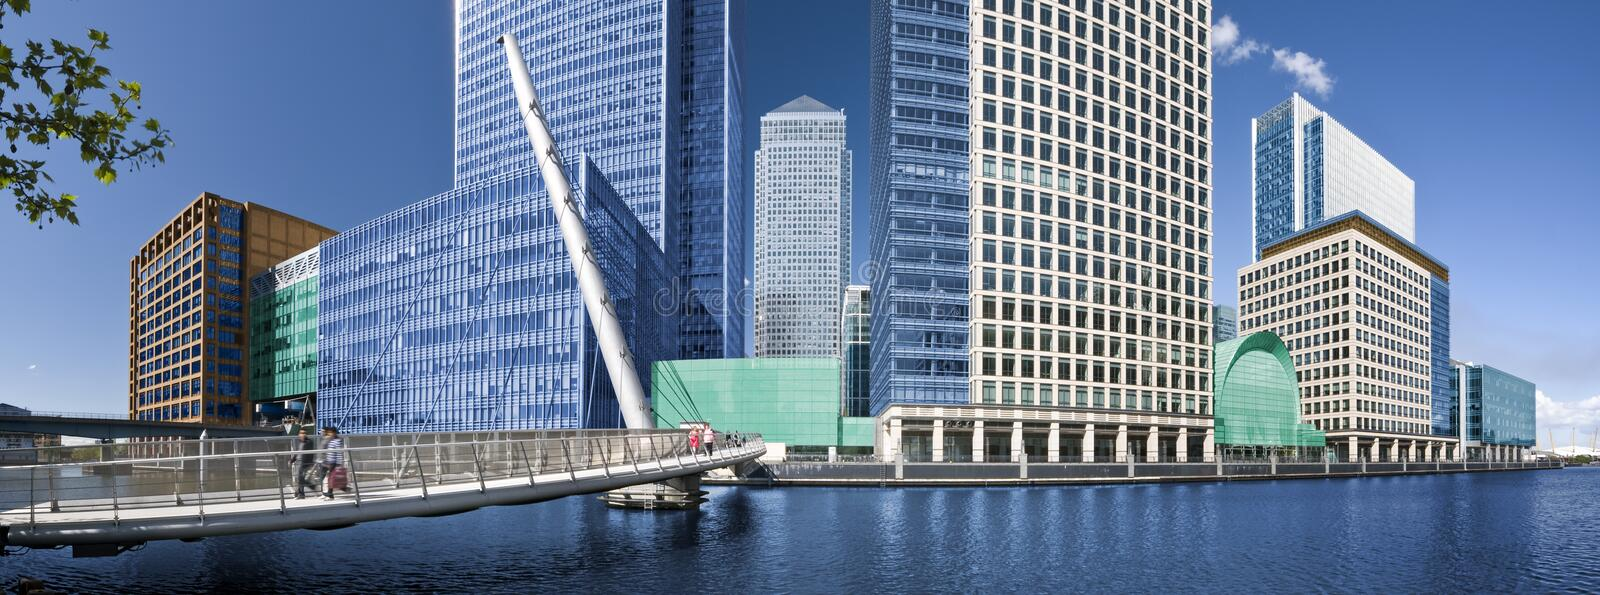 Download Canary Wharf panorama stock image. Image of business - 11670115